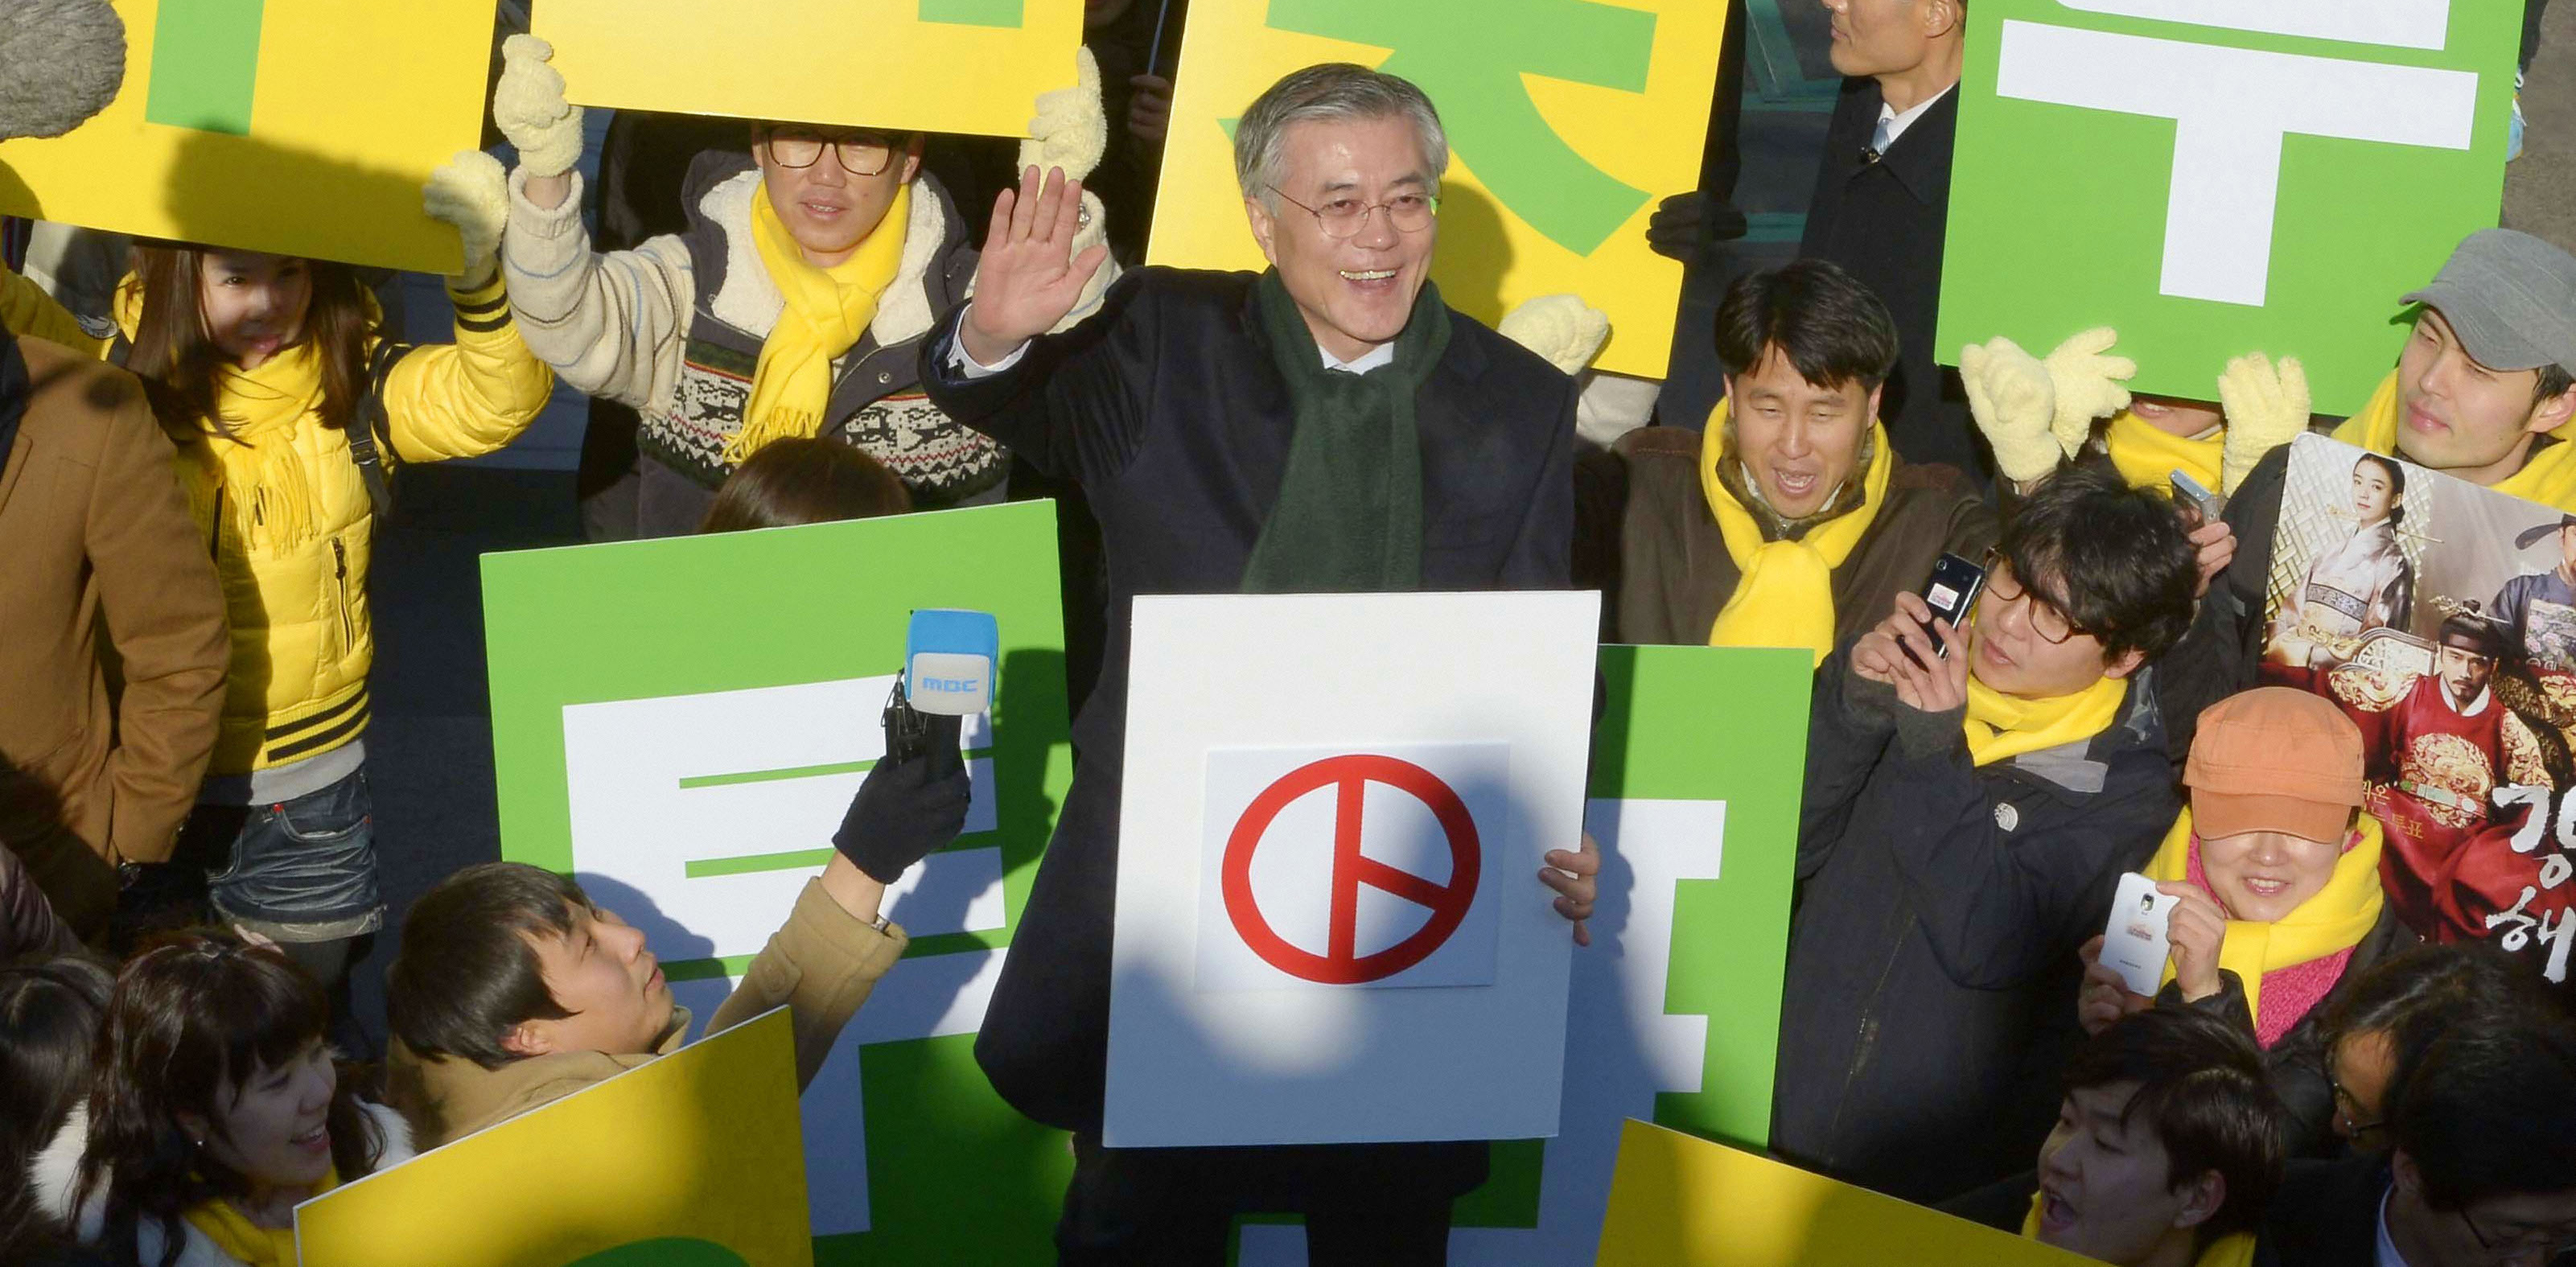 South Korean presidential candidate Moon Jae In during the 2012 campaign (Photo by Kyodo News via Getty Images)